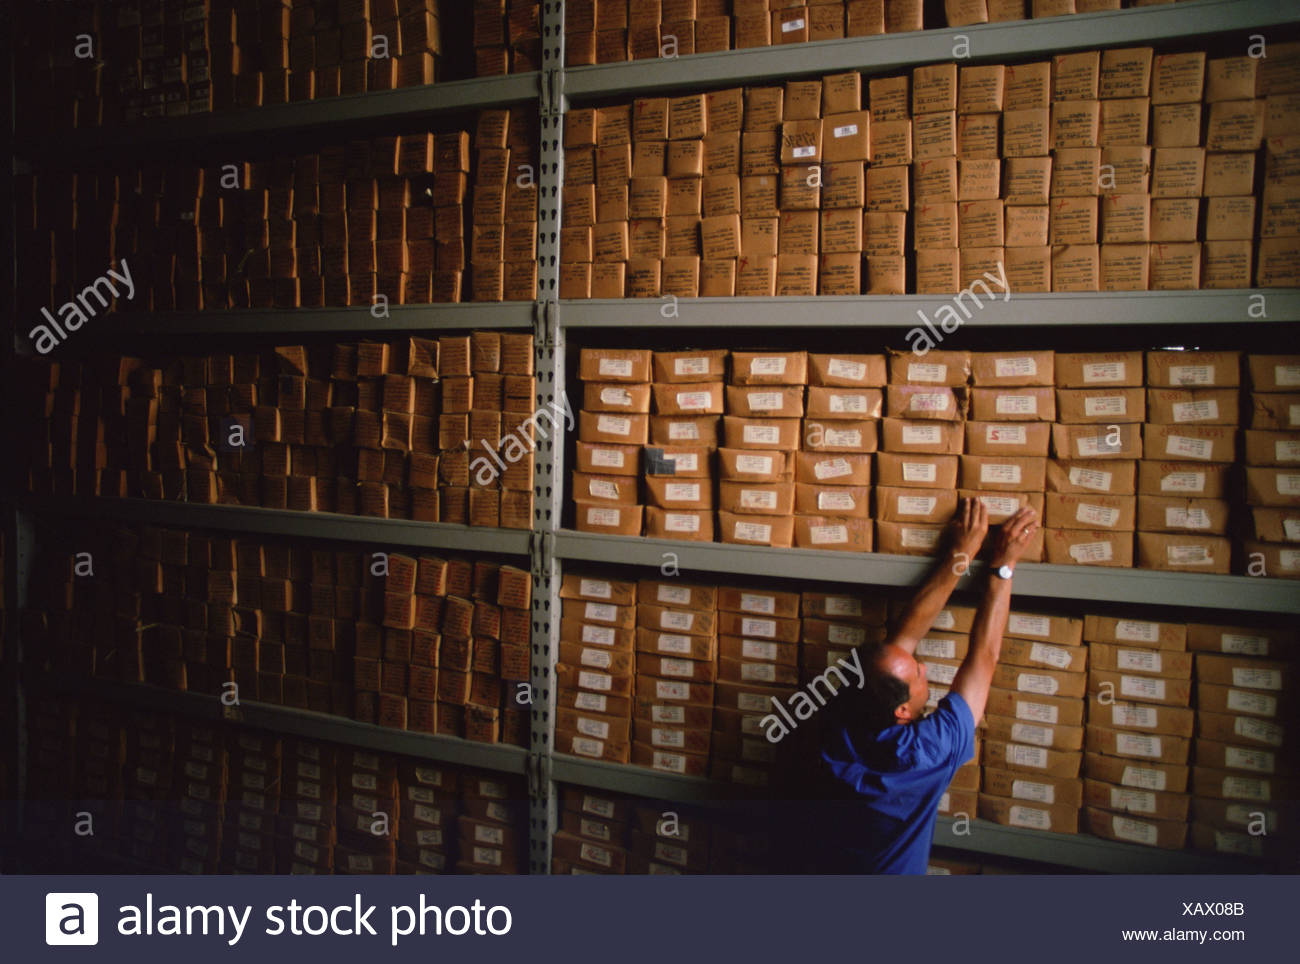 Core samples in storage. - Stock Image